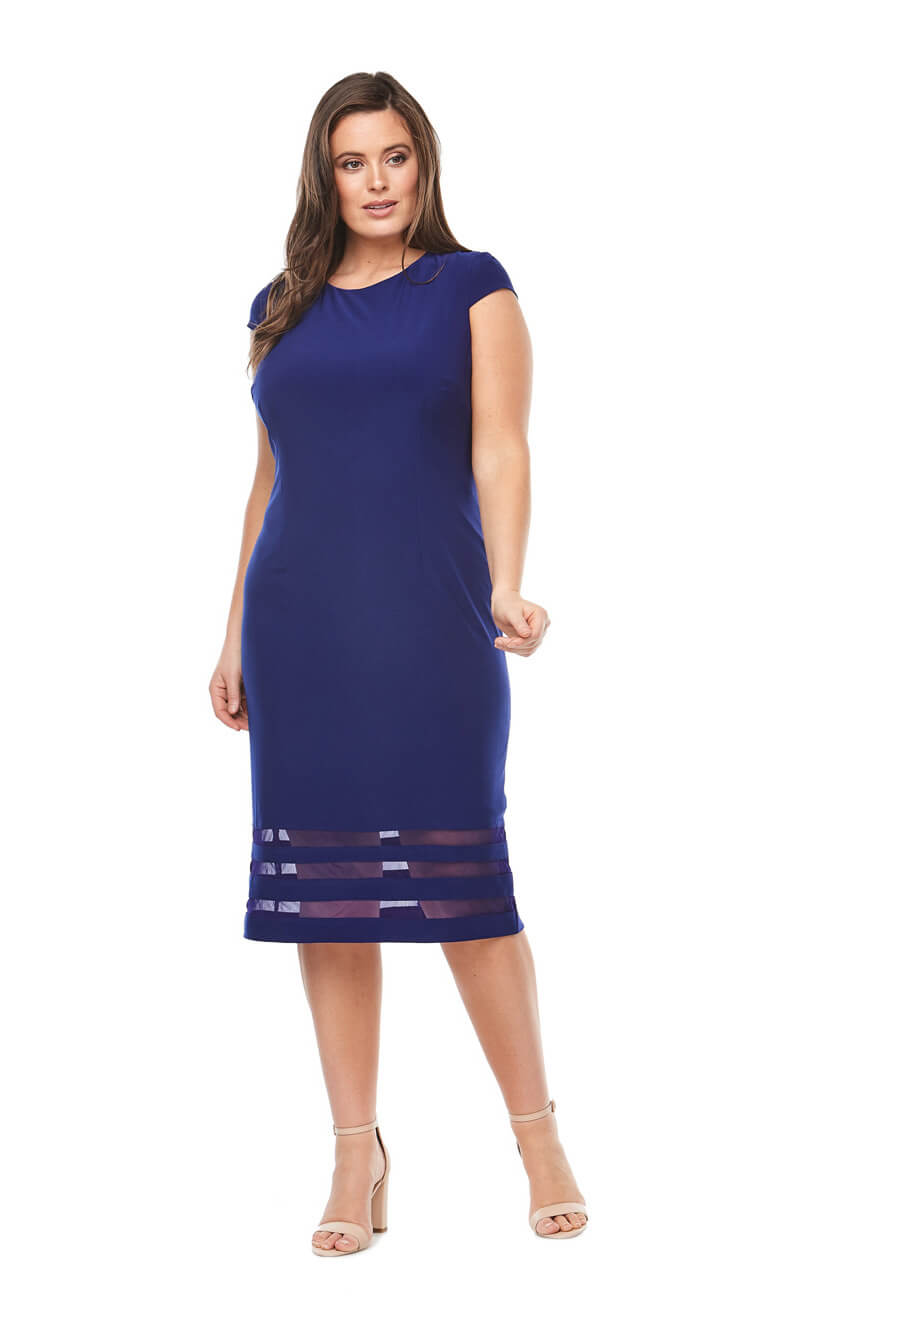 Stretch jersey cocktail dress with cap sleeves, sheer panel detail & matching jacket